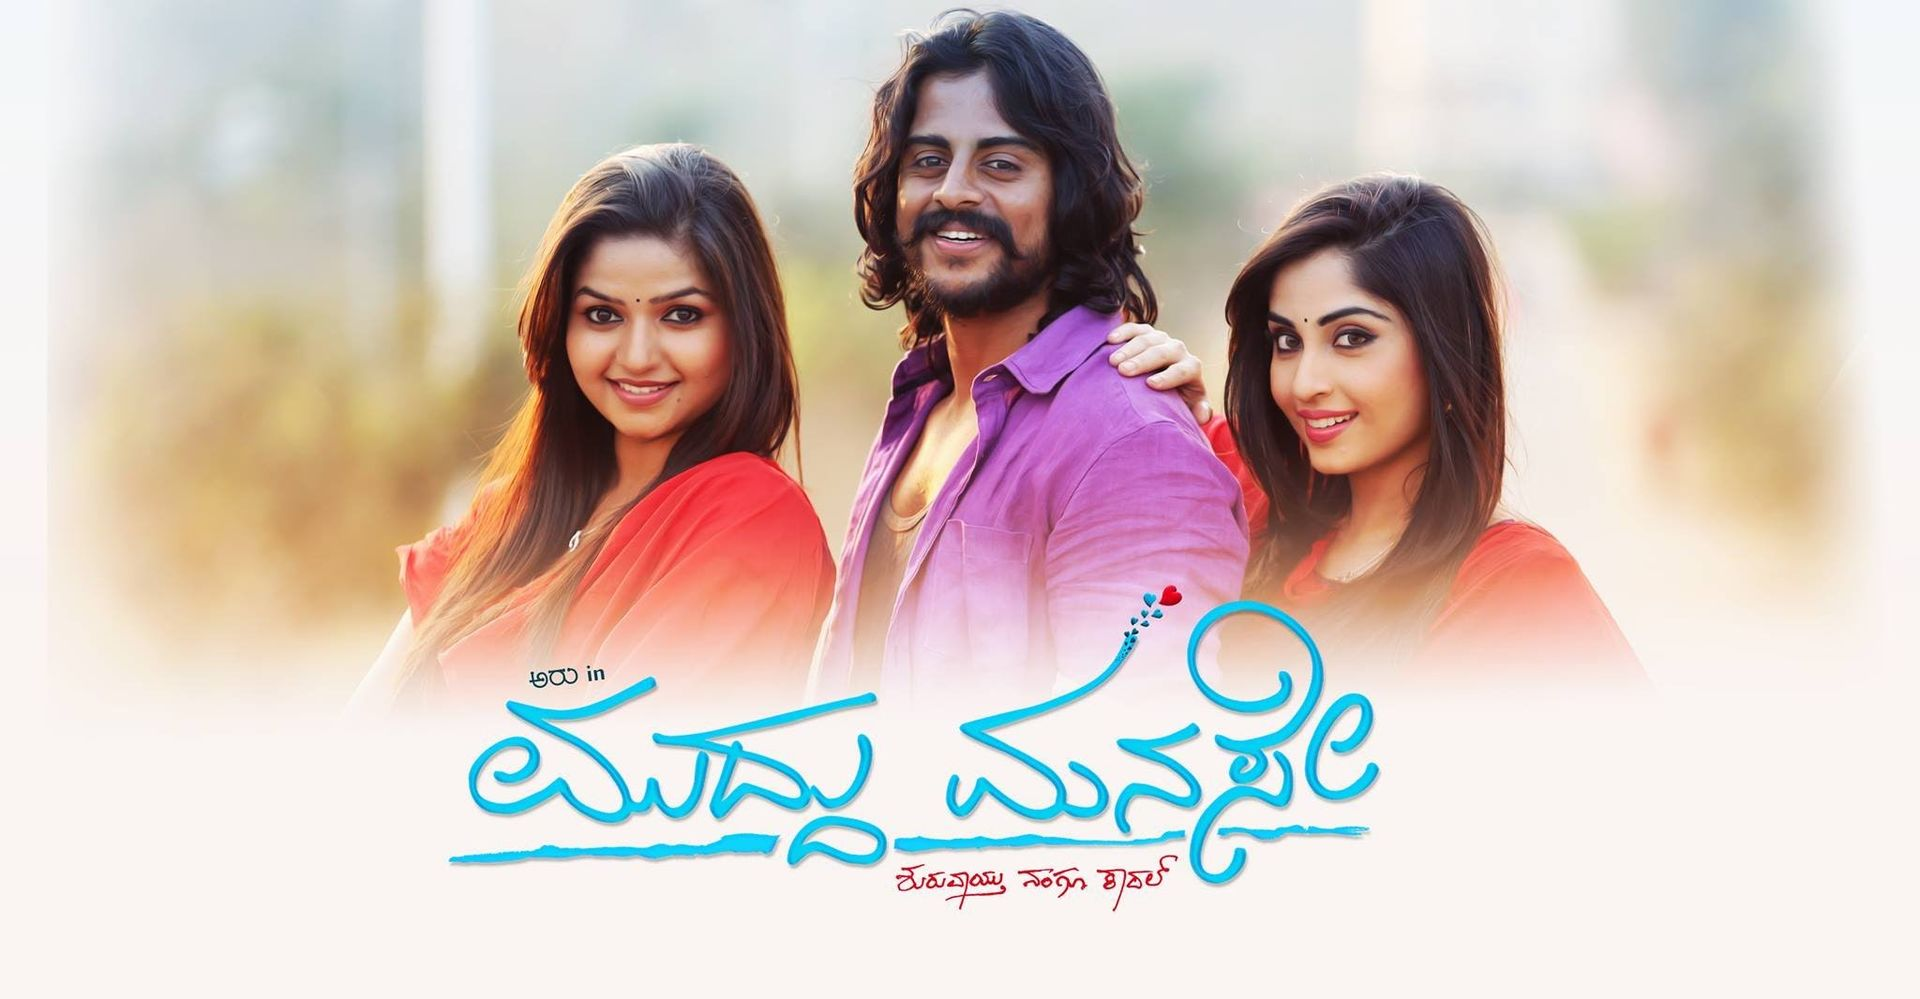 Muddu Manase Is All Set For Its Grand Release